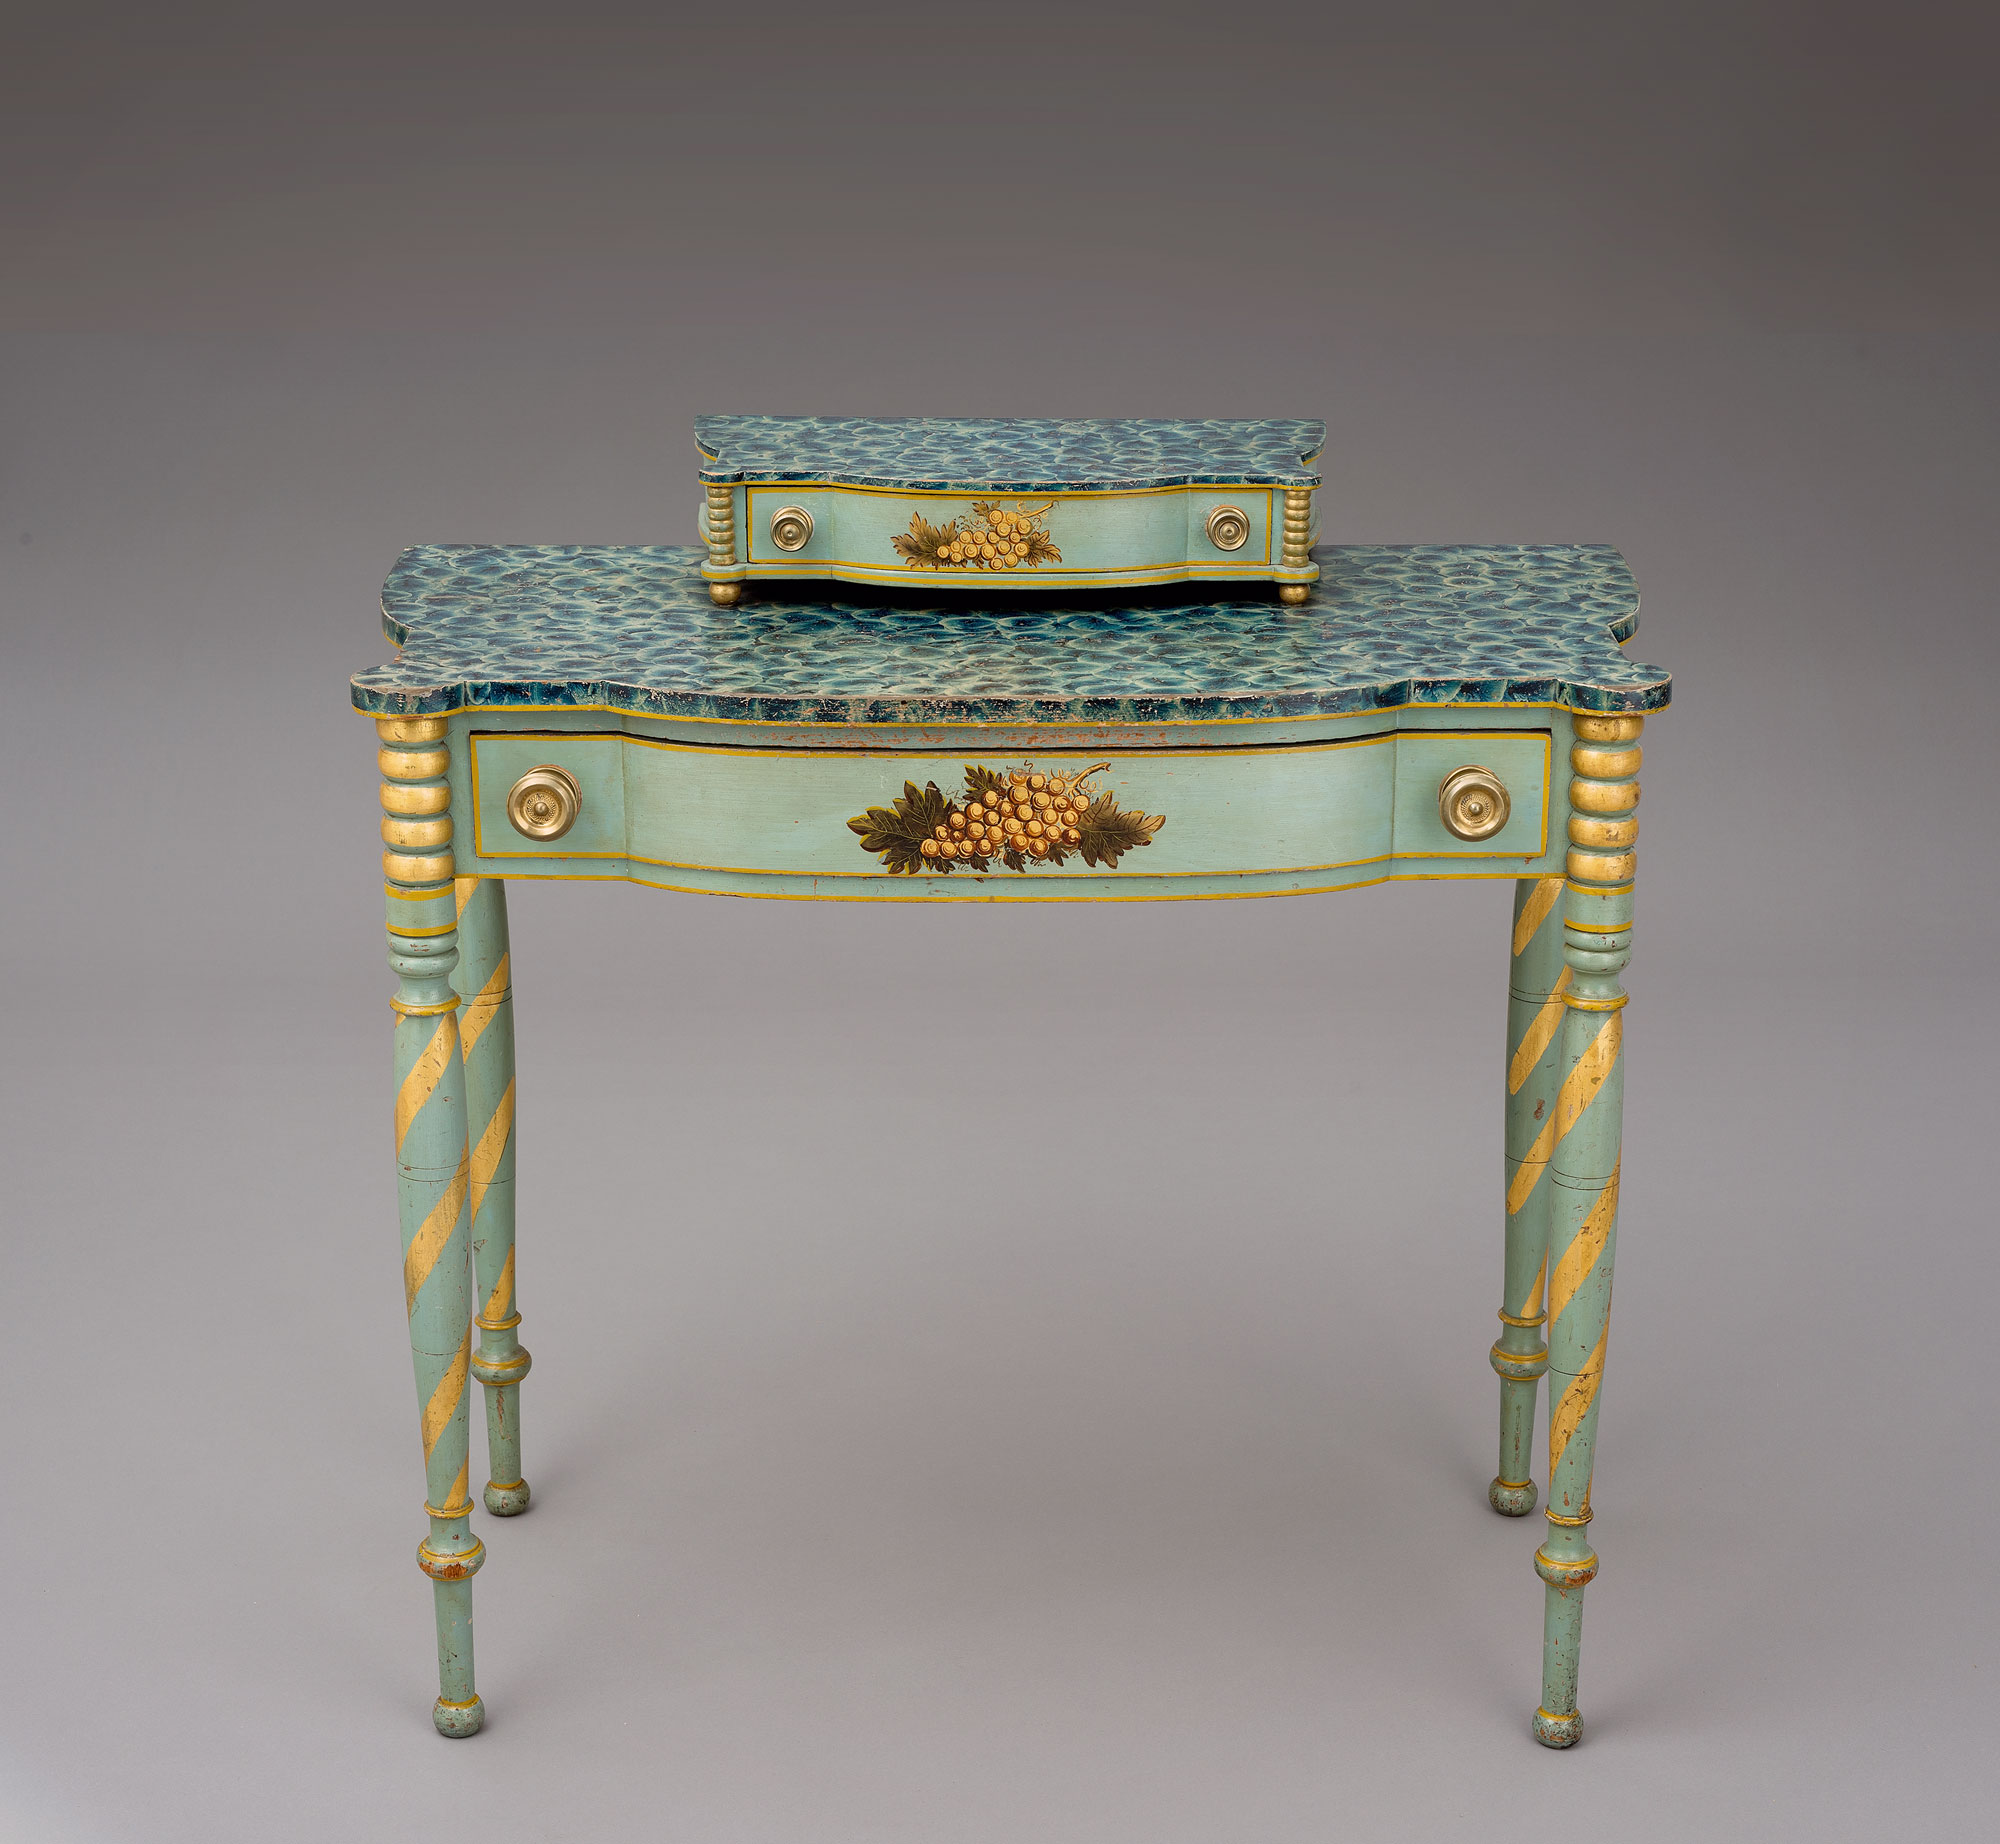 Dressing table, maker unidentified, Portsmouth, New Hampshire, 1815-1825